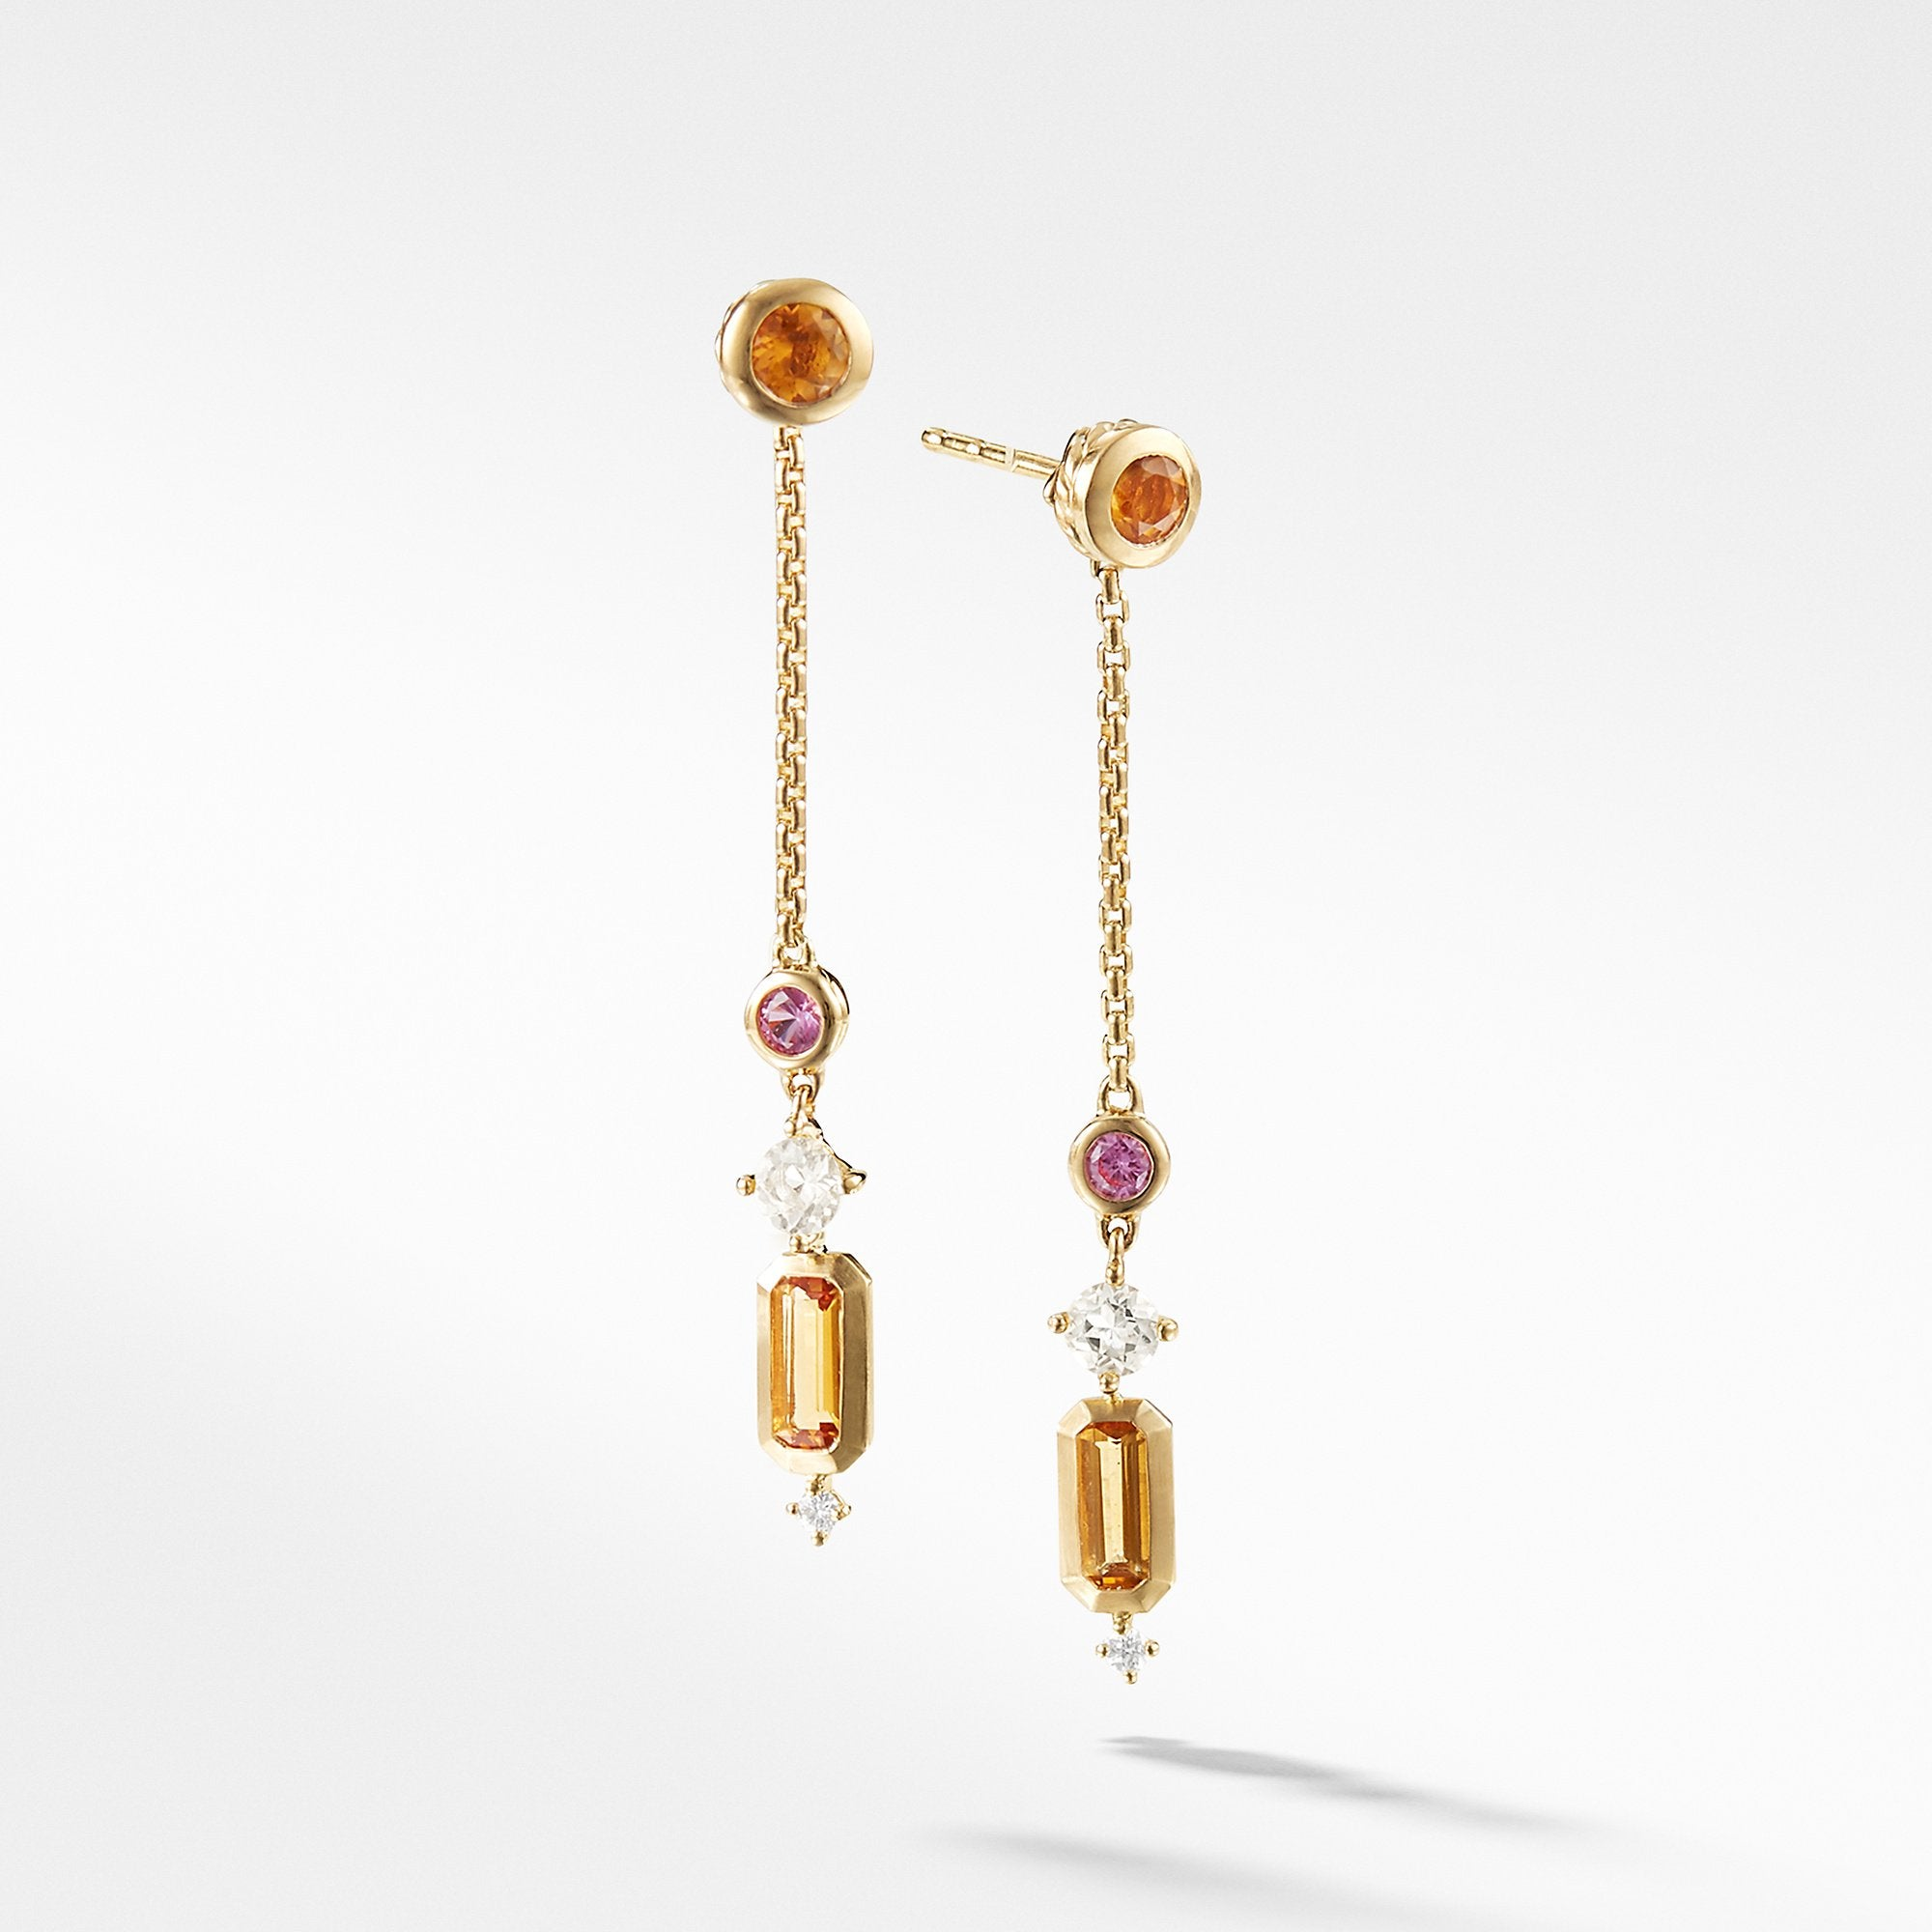 Novella Drop Earrings in Citrine and Yellow Beryl with Diamonds